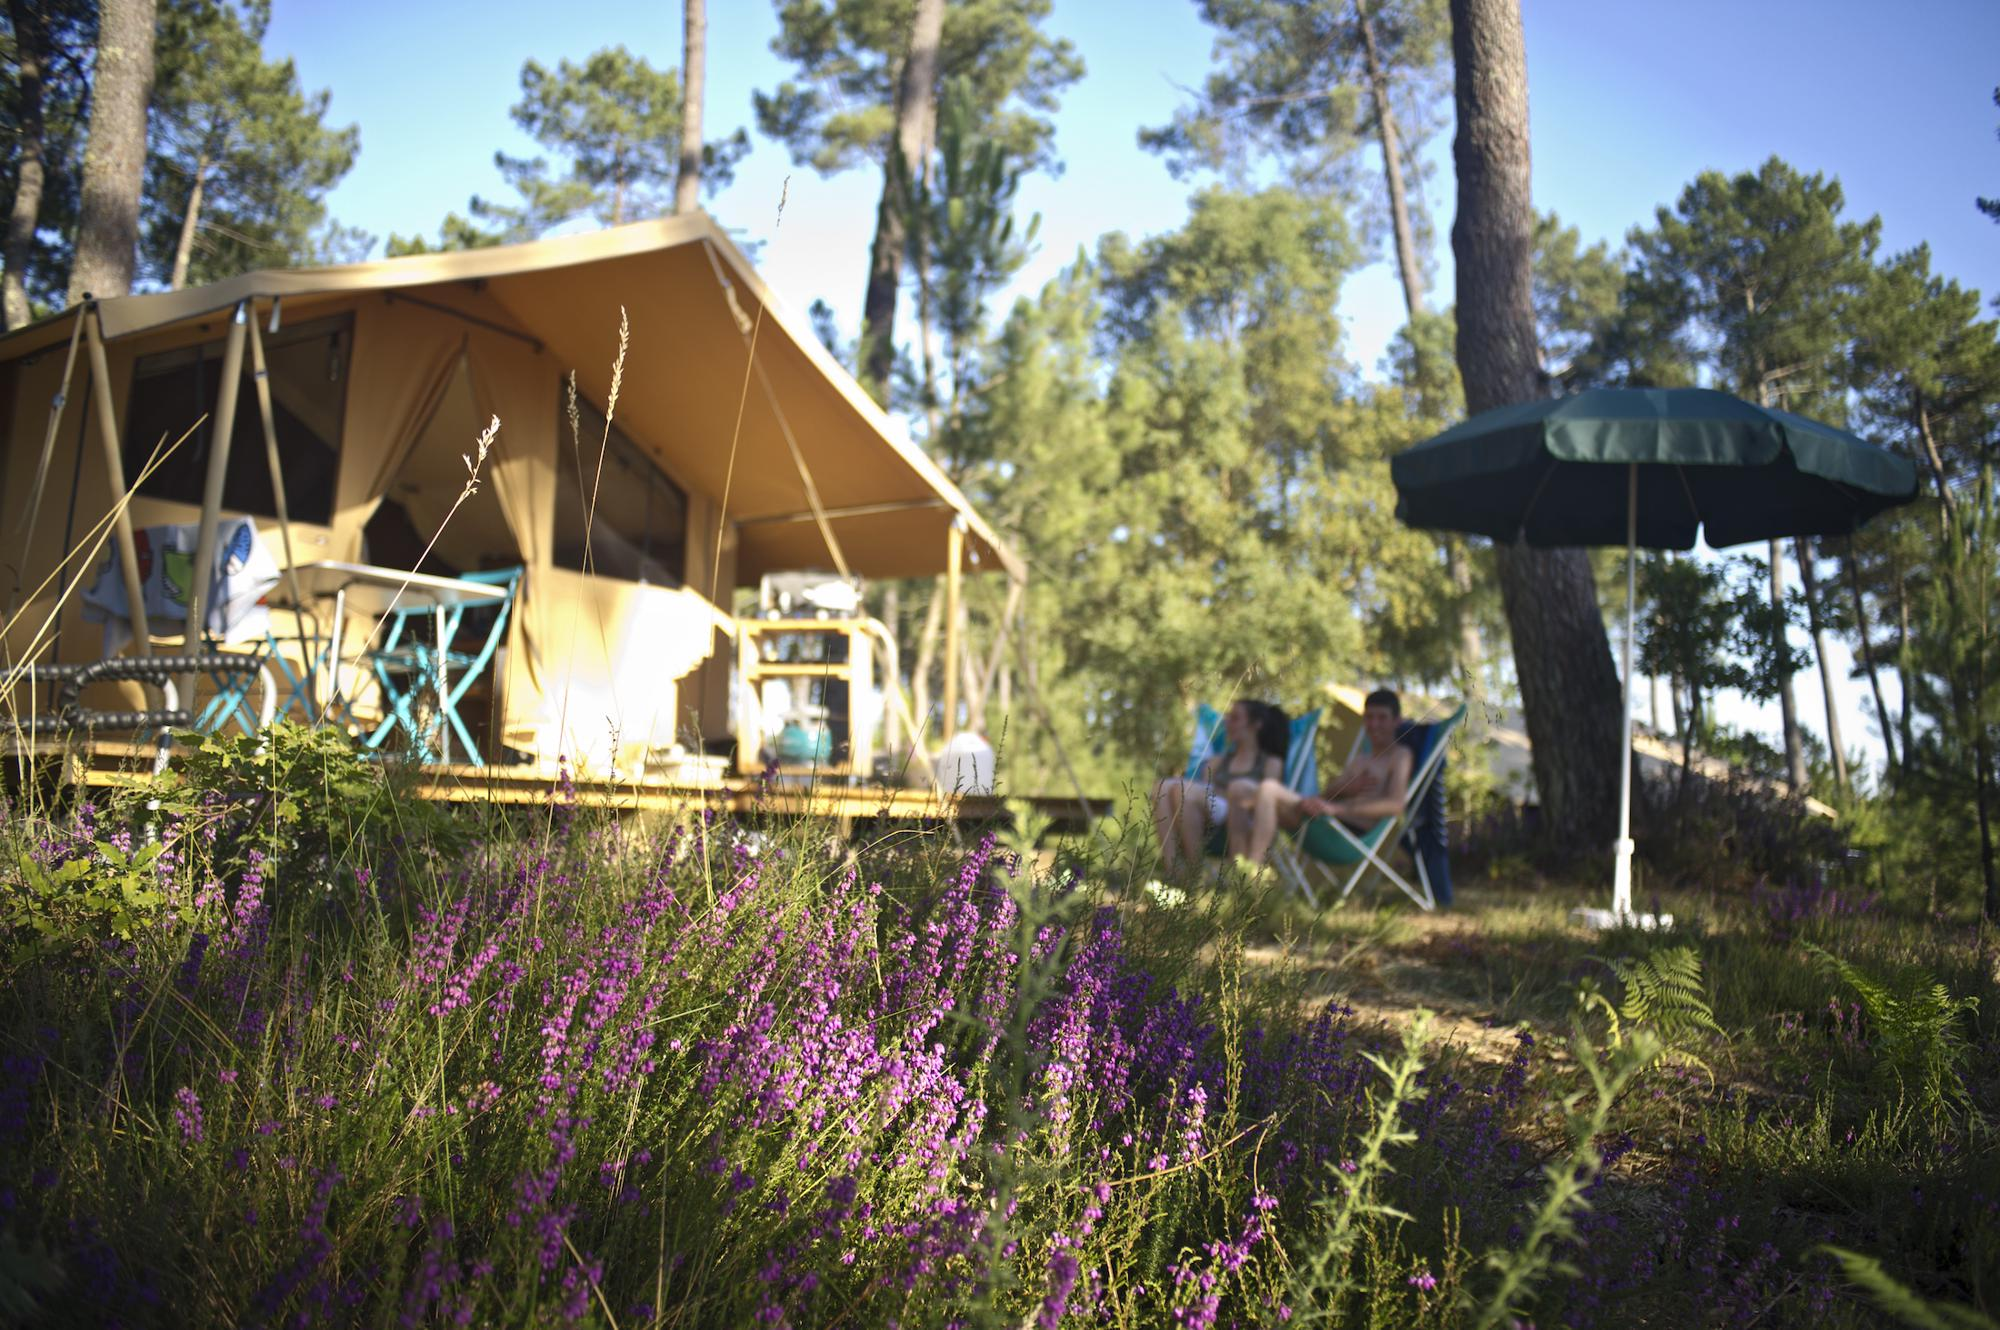 Glamping in Landes | Best Glamping Sites in Landes, France